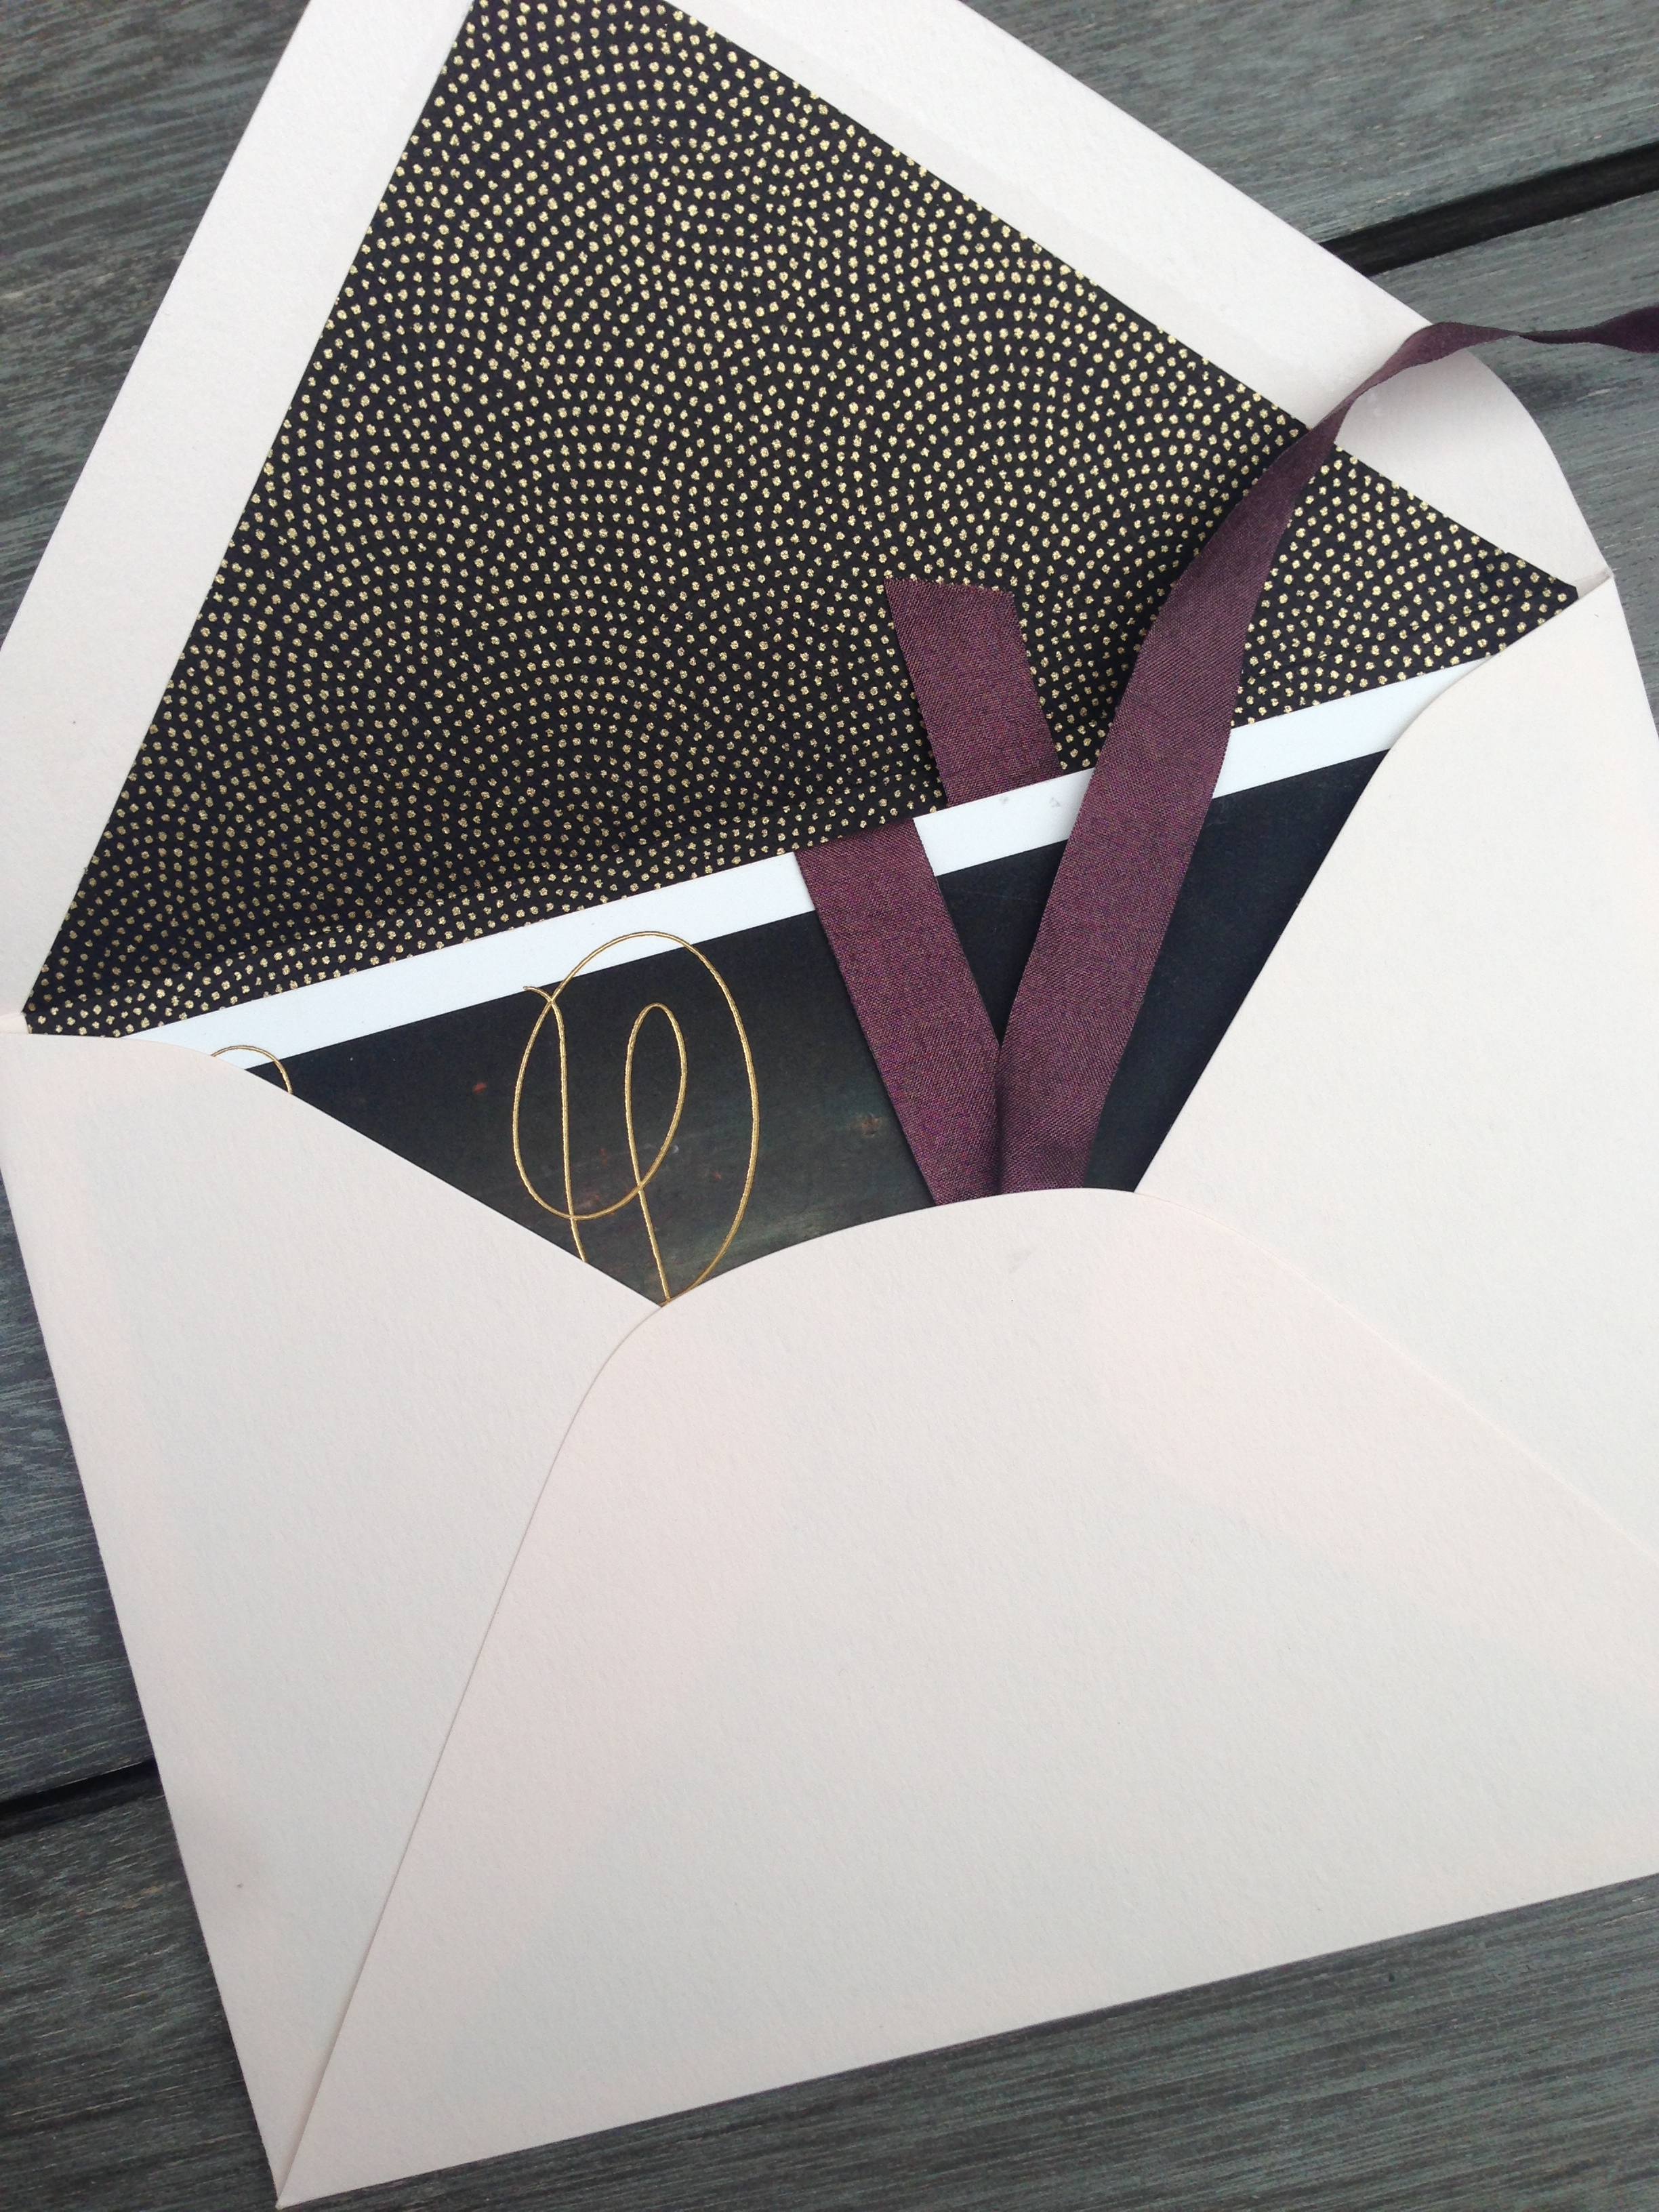 Katie desired that, while her wedding would take place in their barn, the invitation conveyed a sense of Saturday night elegance. Tones of deep purple and blush mixed with black and gold.